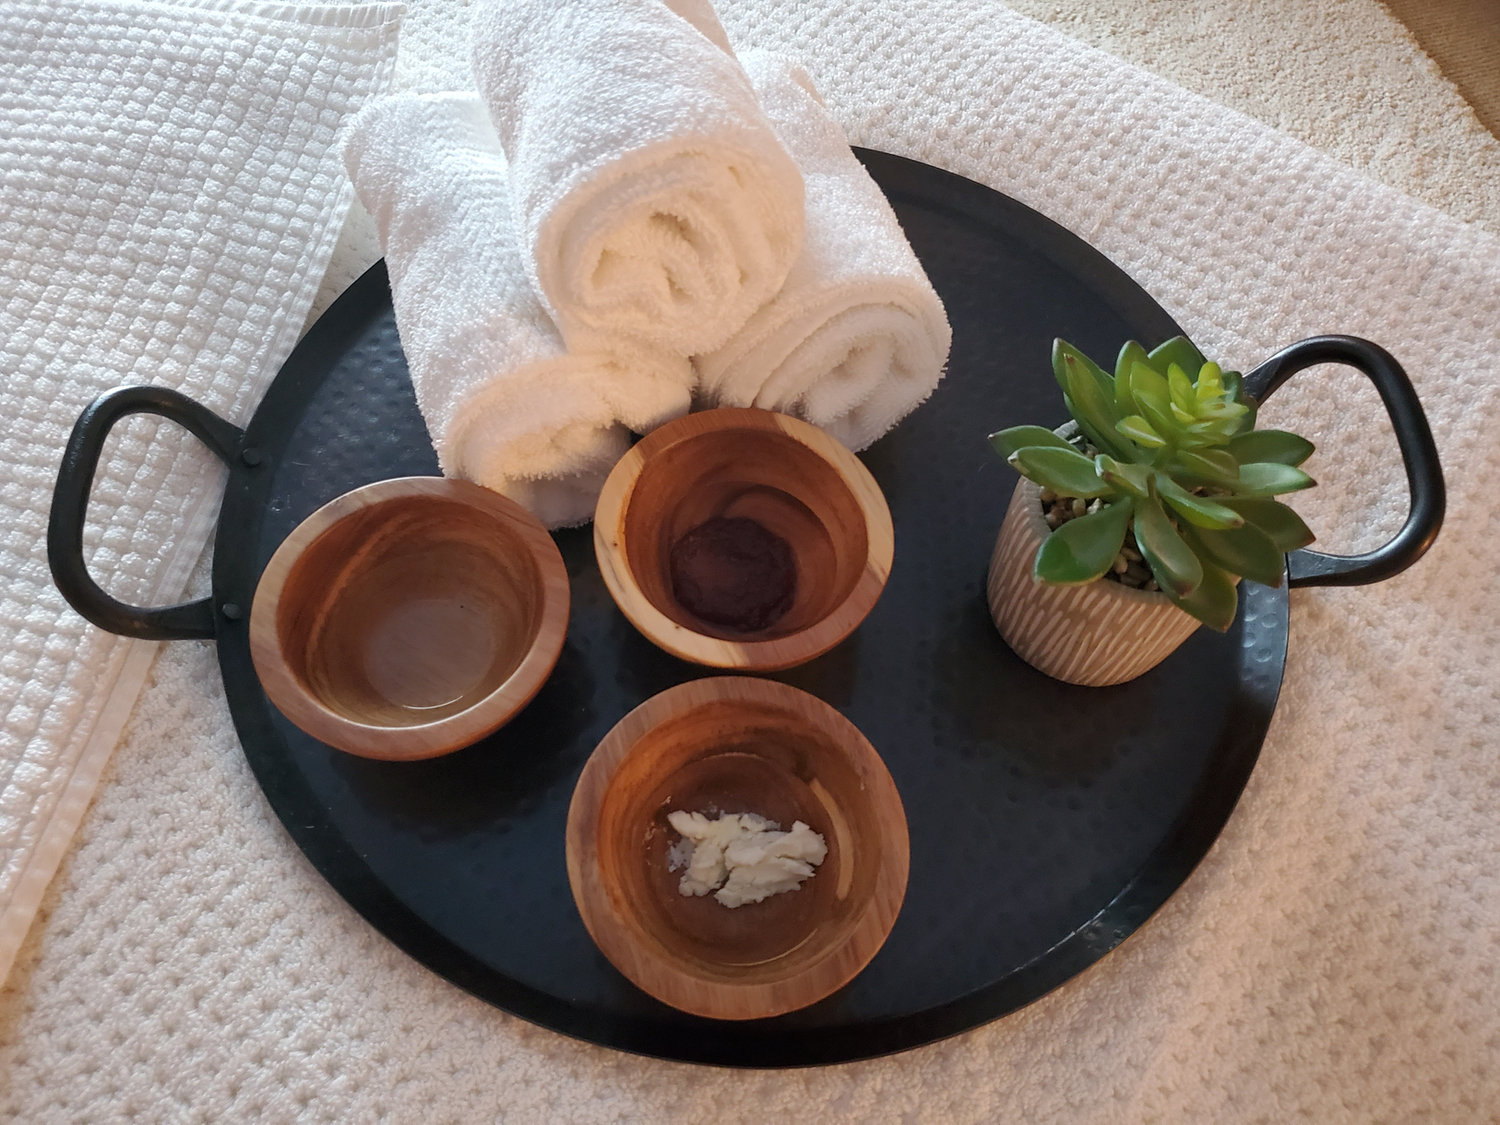 Scrub and Wrap Pampering